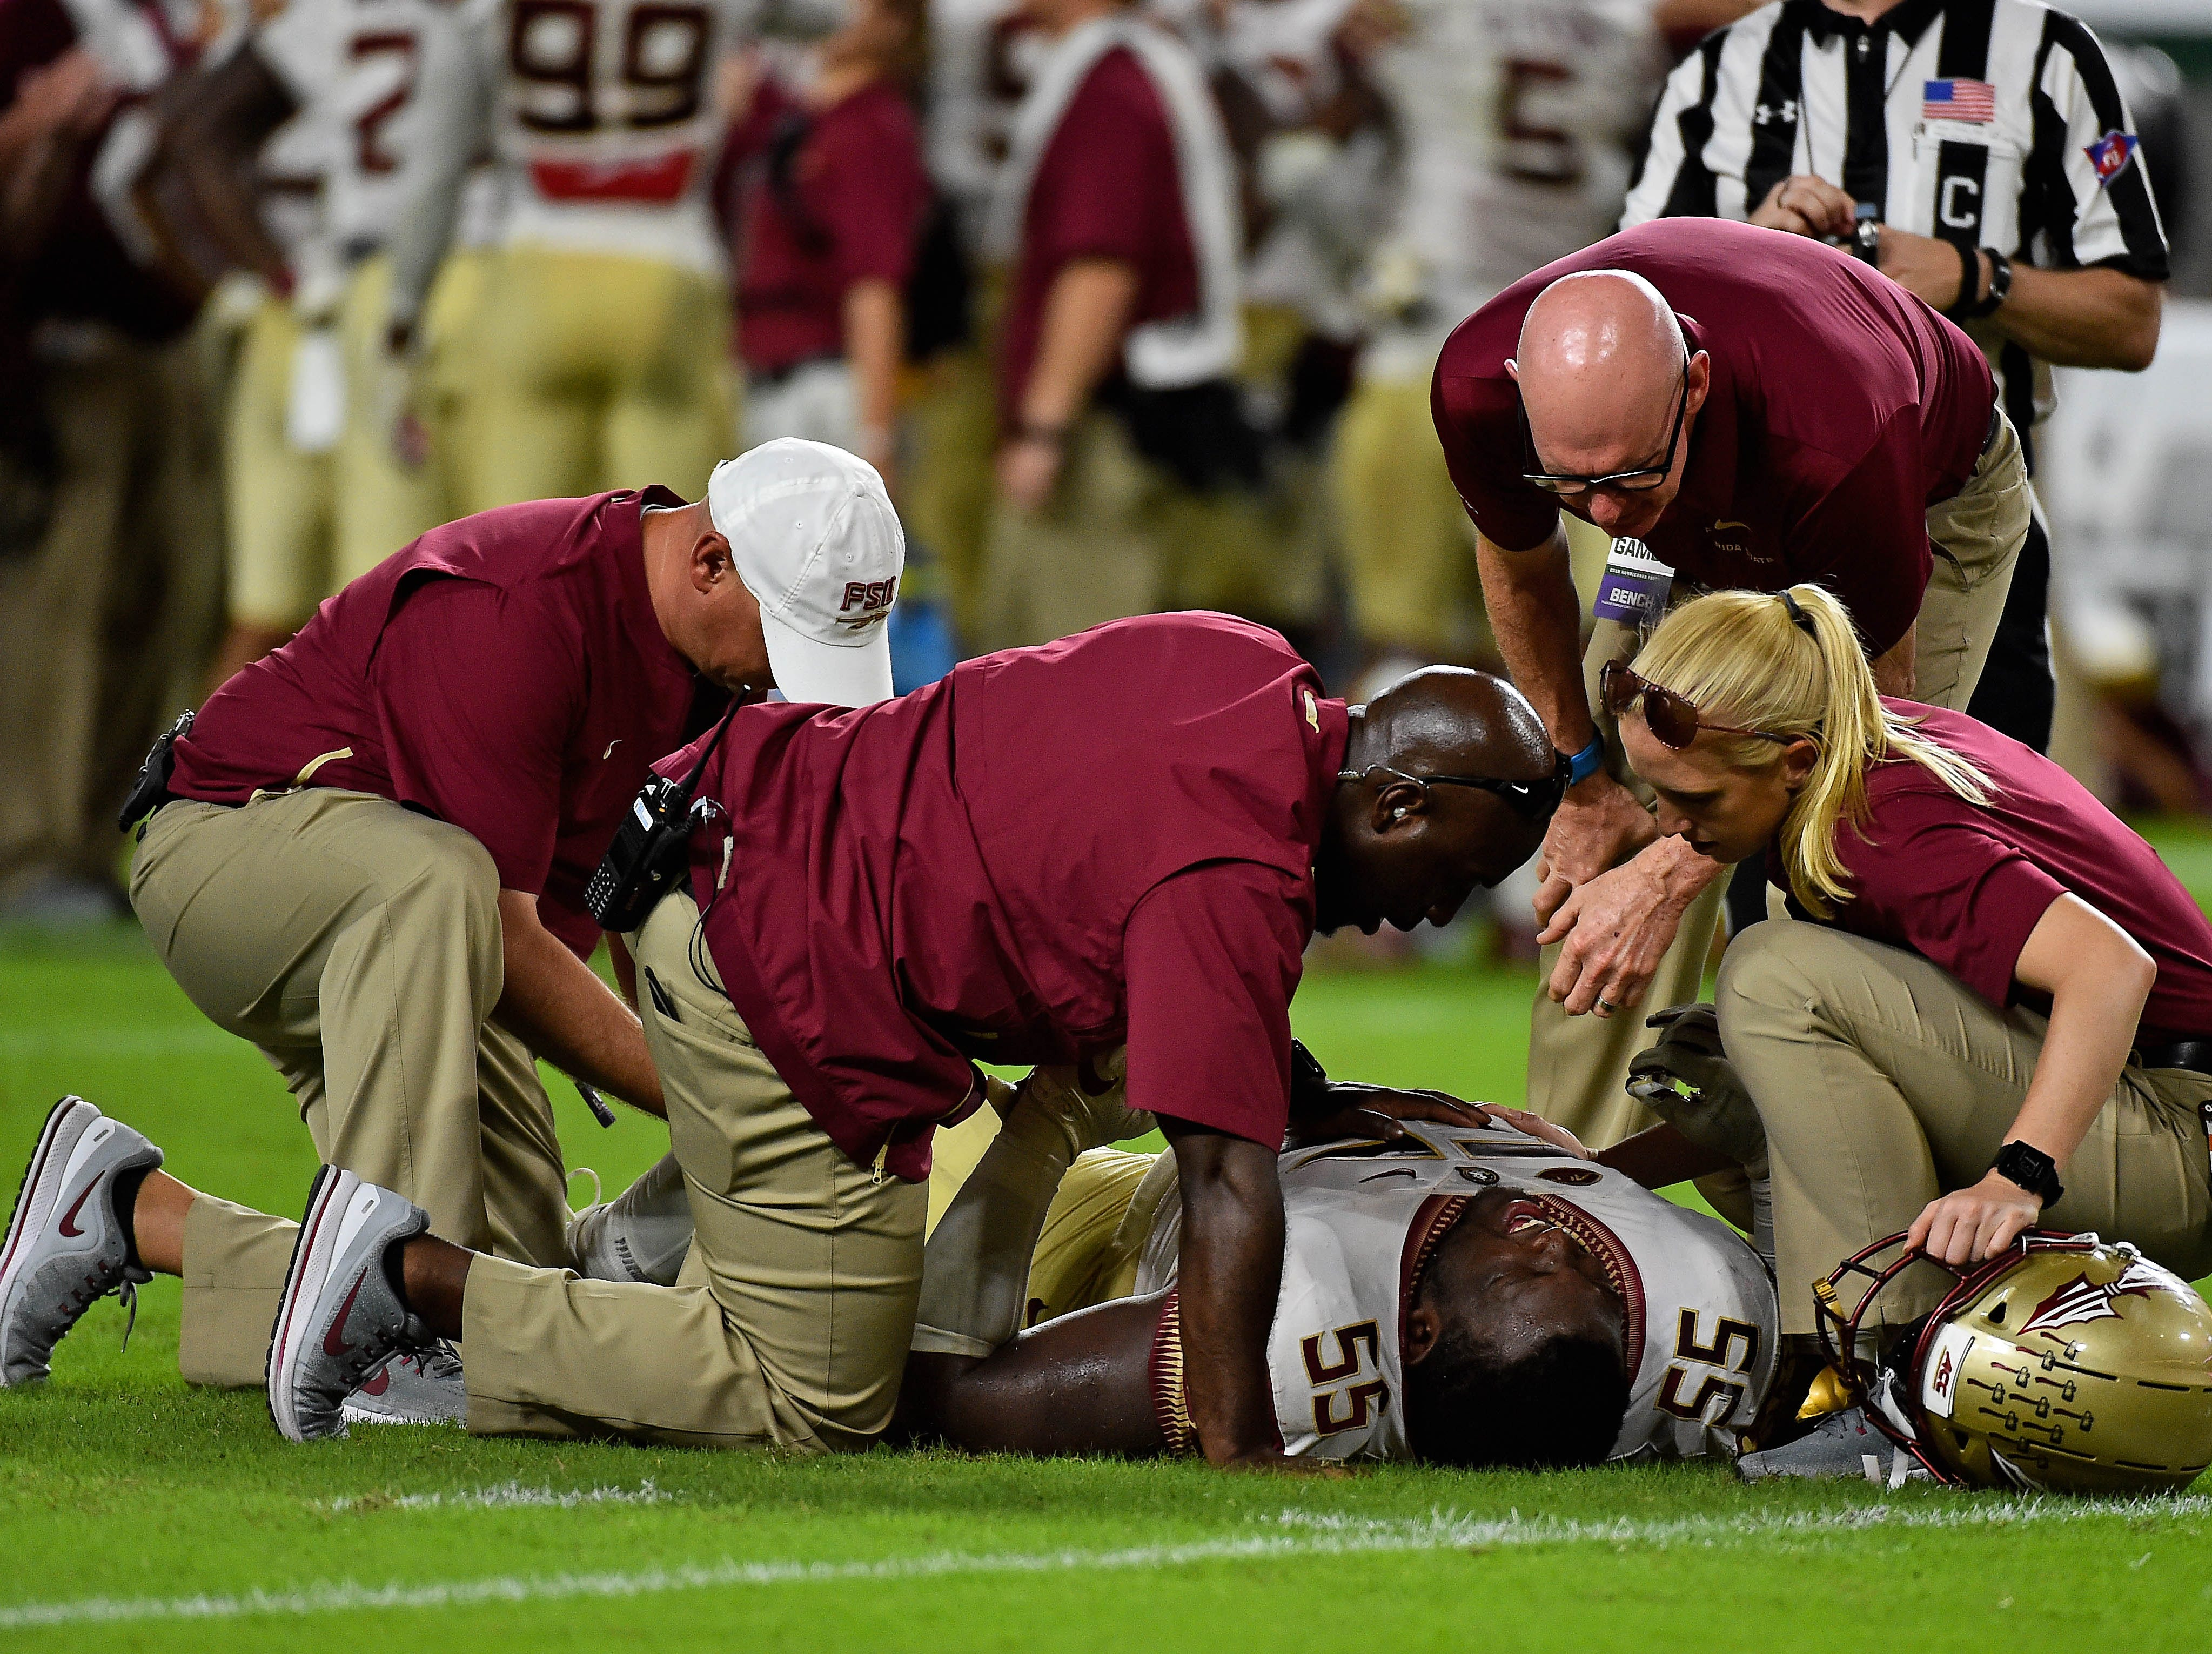 Oct 6, 2018; Miami Gardens, FL, USA; Team trainers attend to Florida State Seminoles defensive tackle Fredrick Jones (55) after being injured during the second half against the Miami Hurricanes at Hard Rock Stadium. Mandatory Credit: Jasen Vinlove-USA TODAY Sports